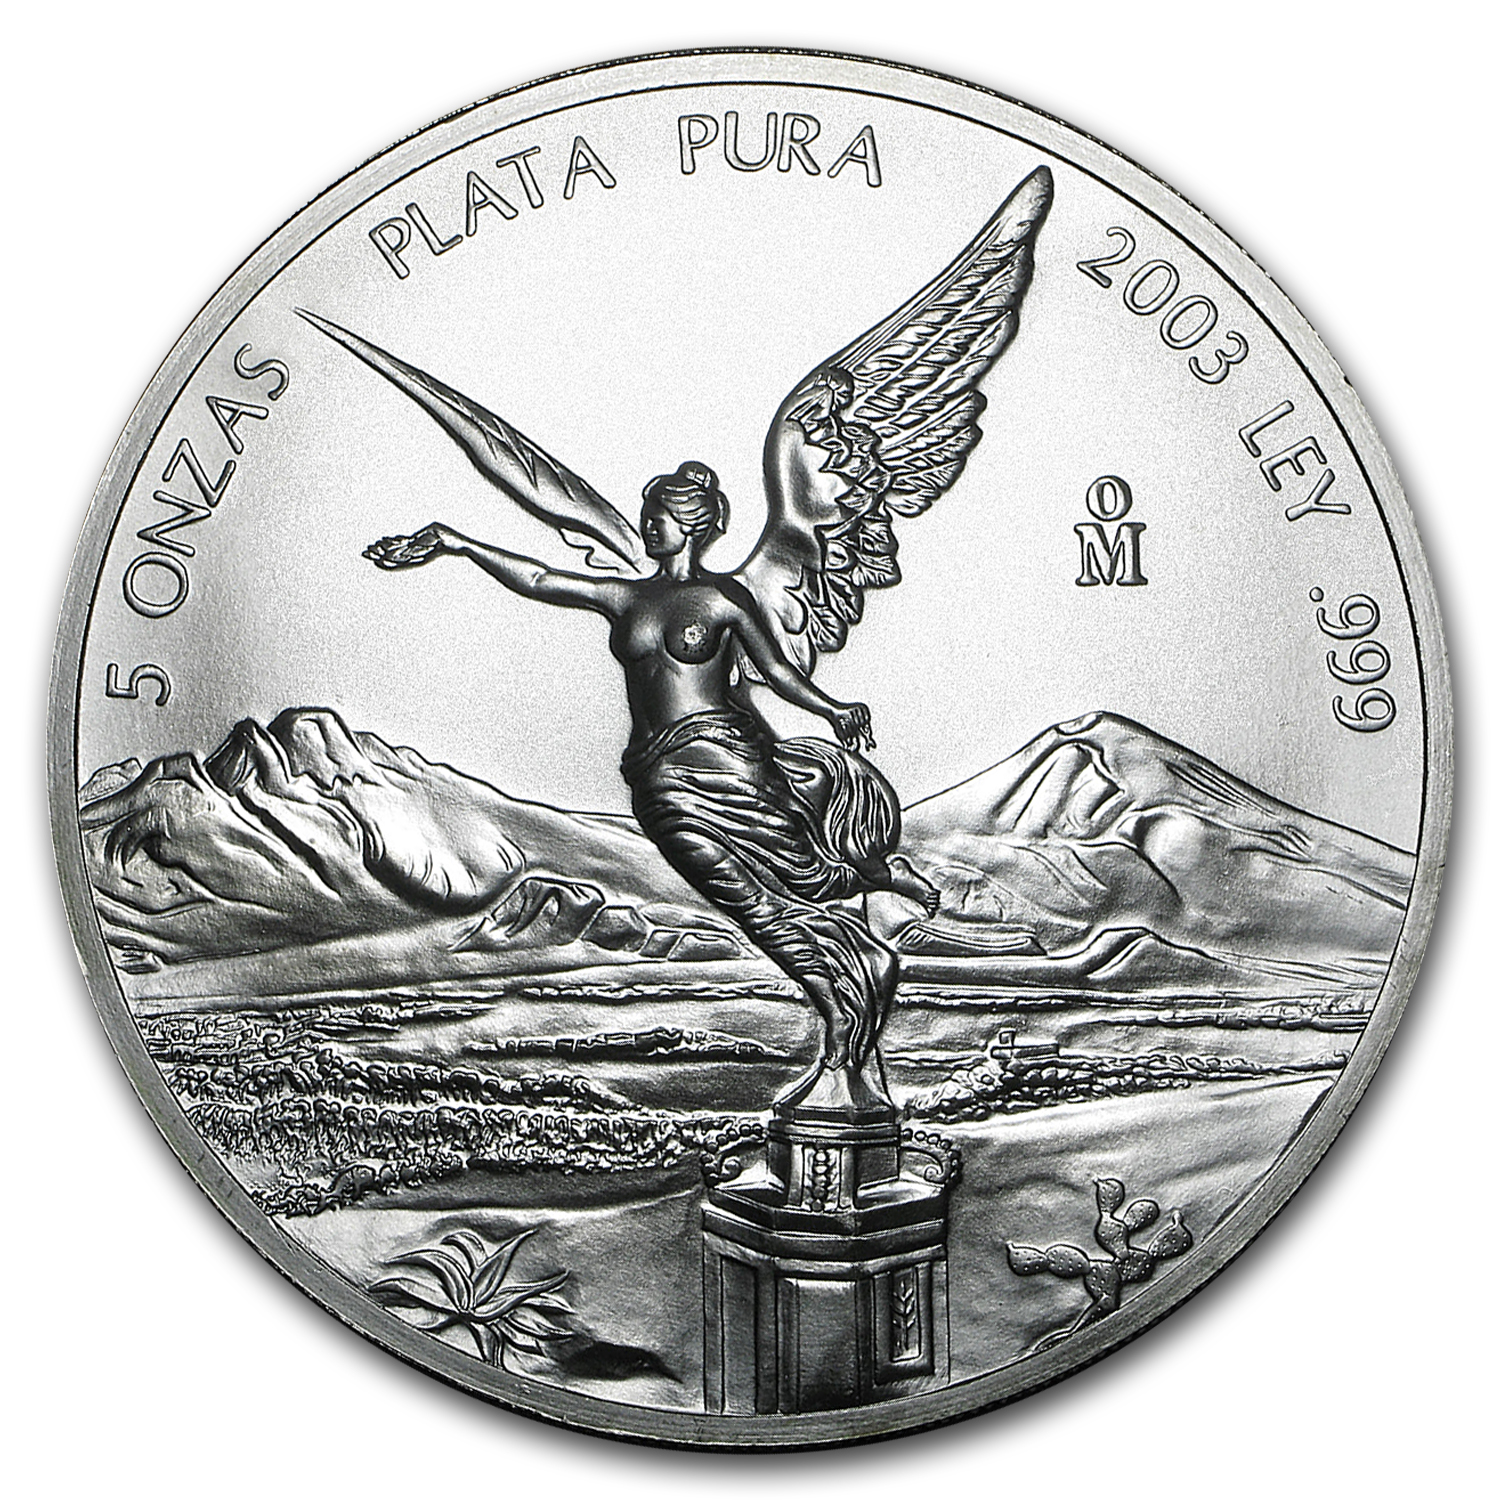 2003 5 oz Silver Mexican Libertad (Brilliant Uncirculated)